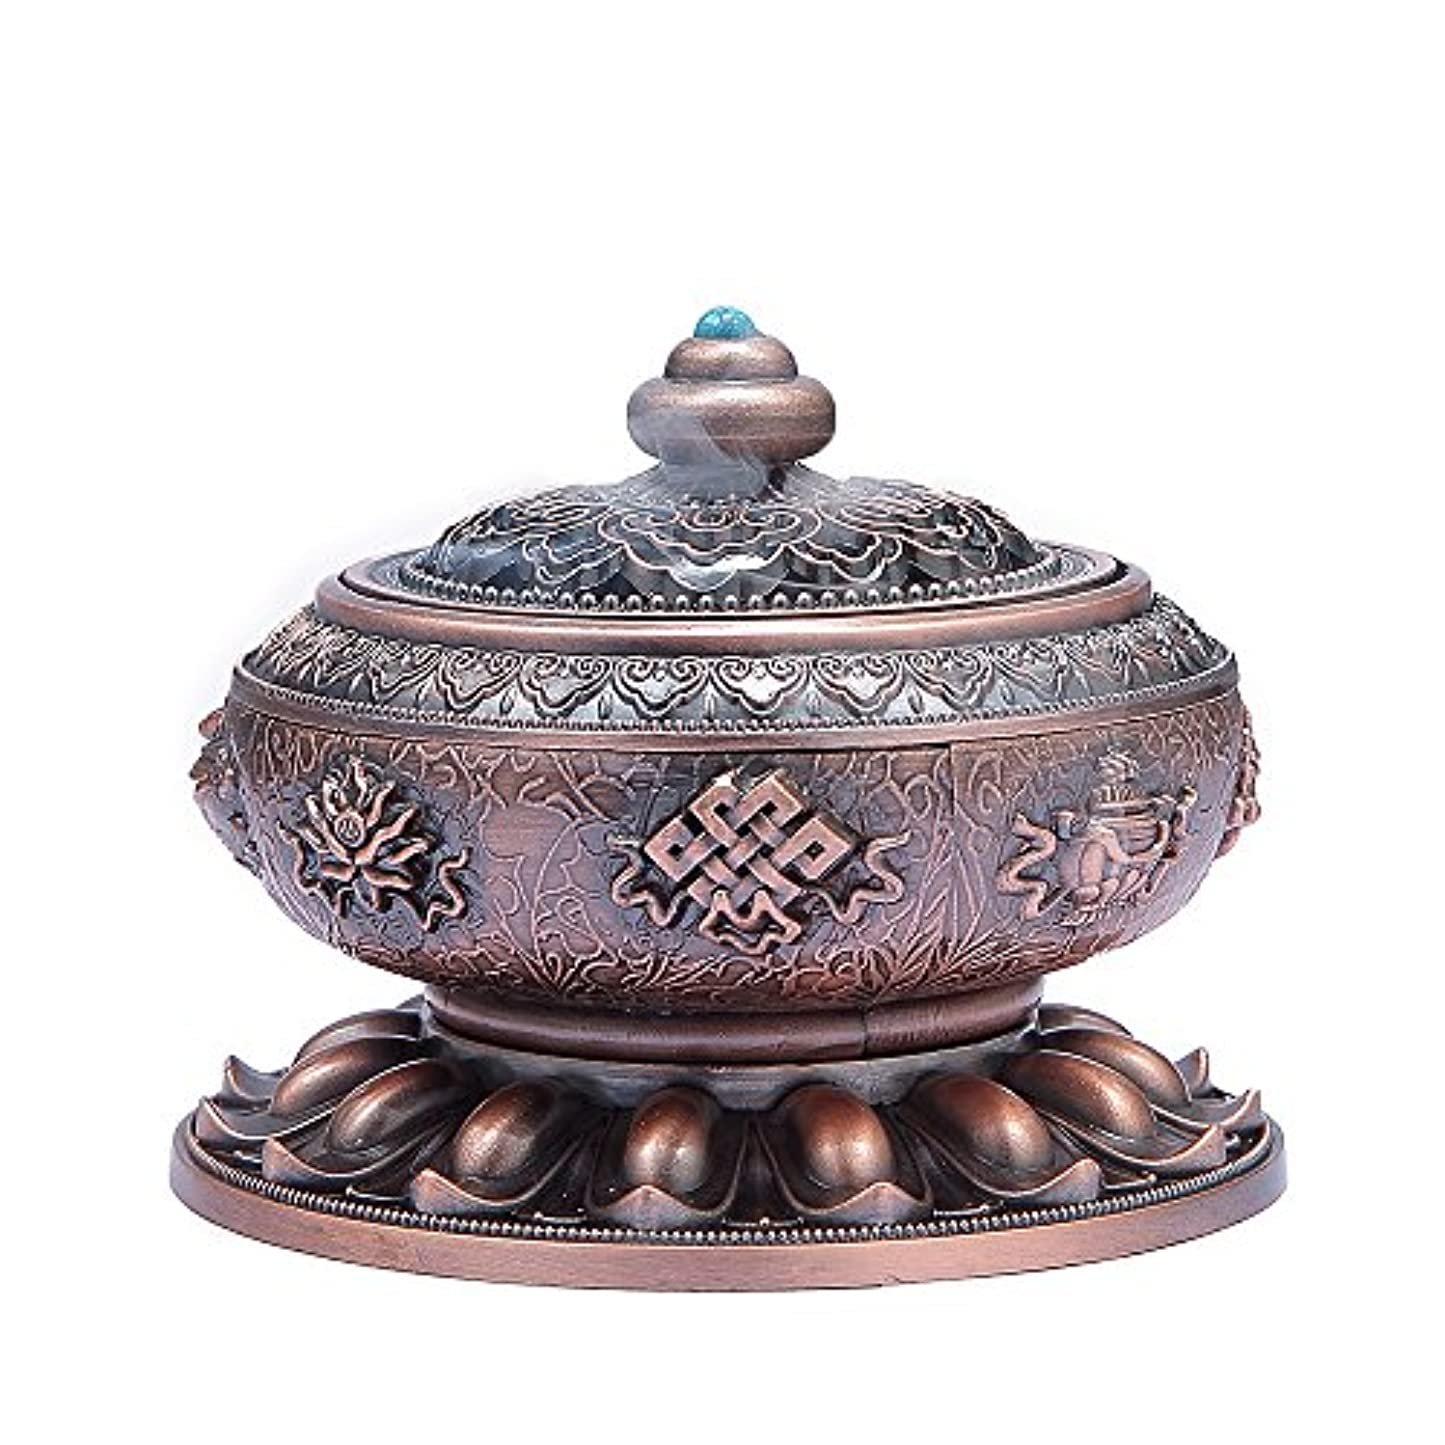 無一文繰り返し問い合わせるMEDOOSKY Large Incense Holder Burner Tibet Lotus Copper Alloy( Stick/ Cone/ Coil Incense)